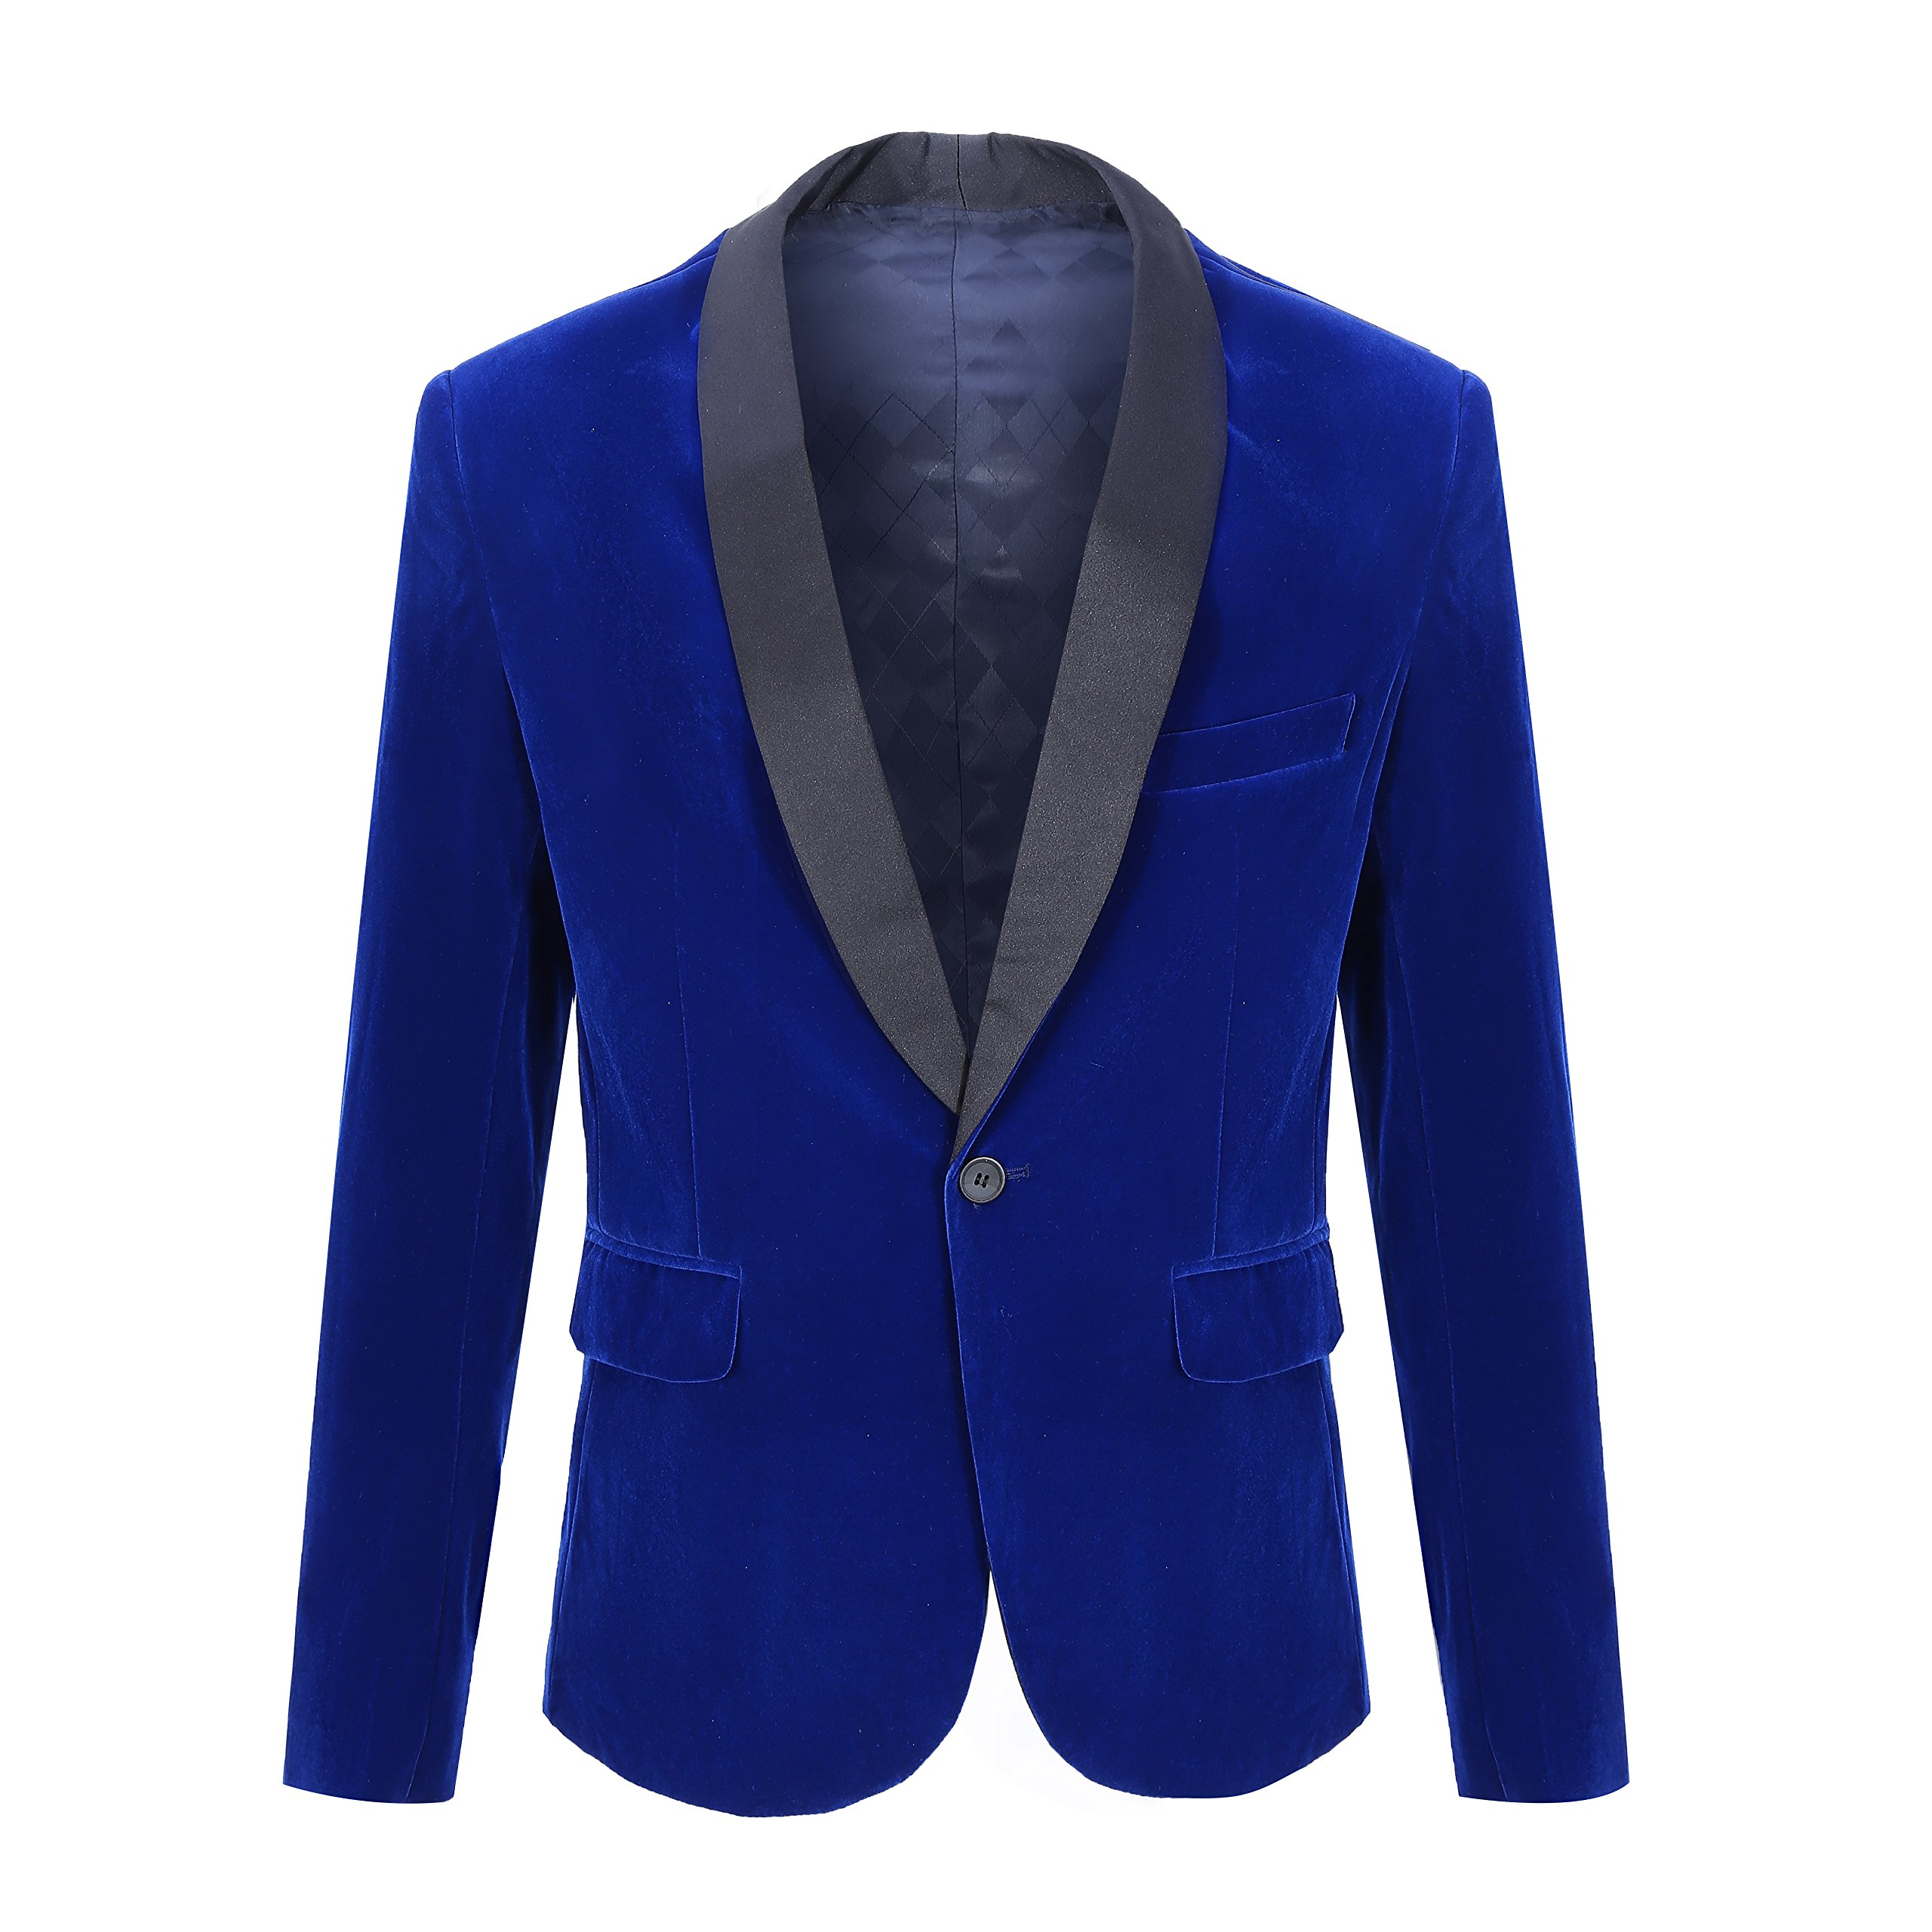 CARFFIV Mens Fashion Velvet Blazer Suit Jacket (Blue Shawl Lapel, Tag M/US 38R)